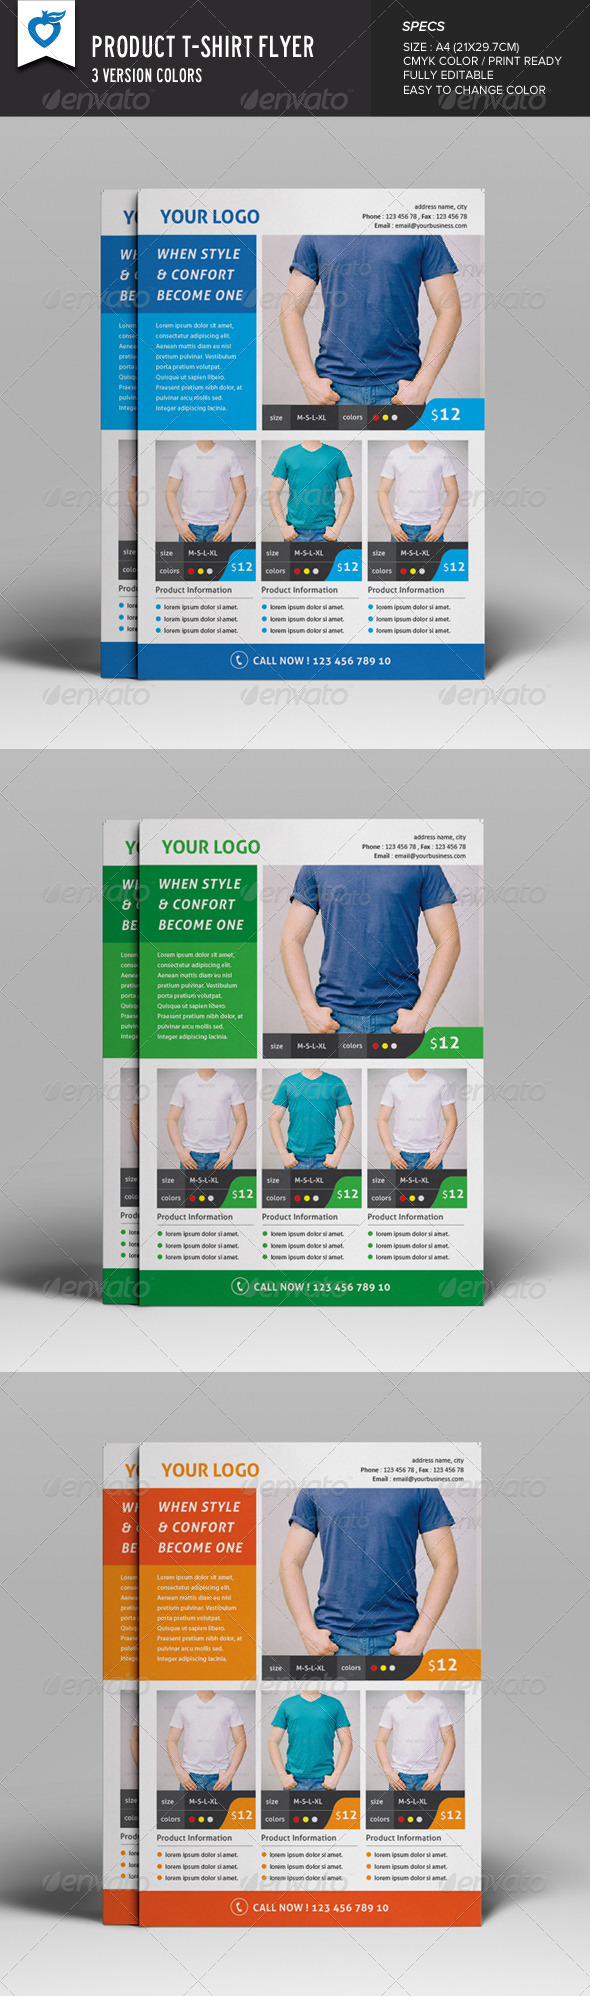 GraphicRiver Product T-shirt Flyer 8164439